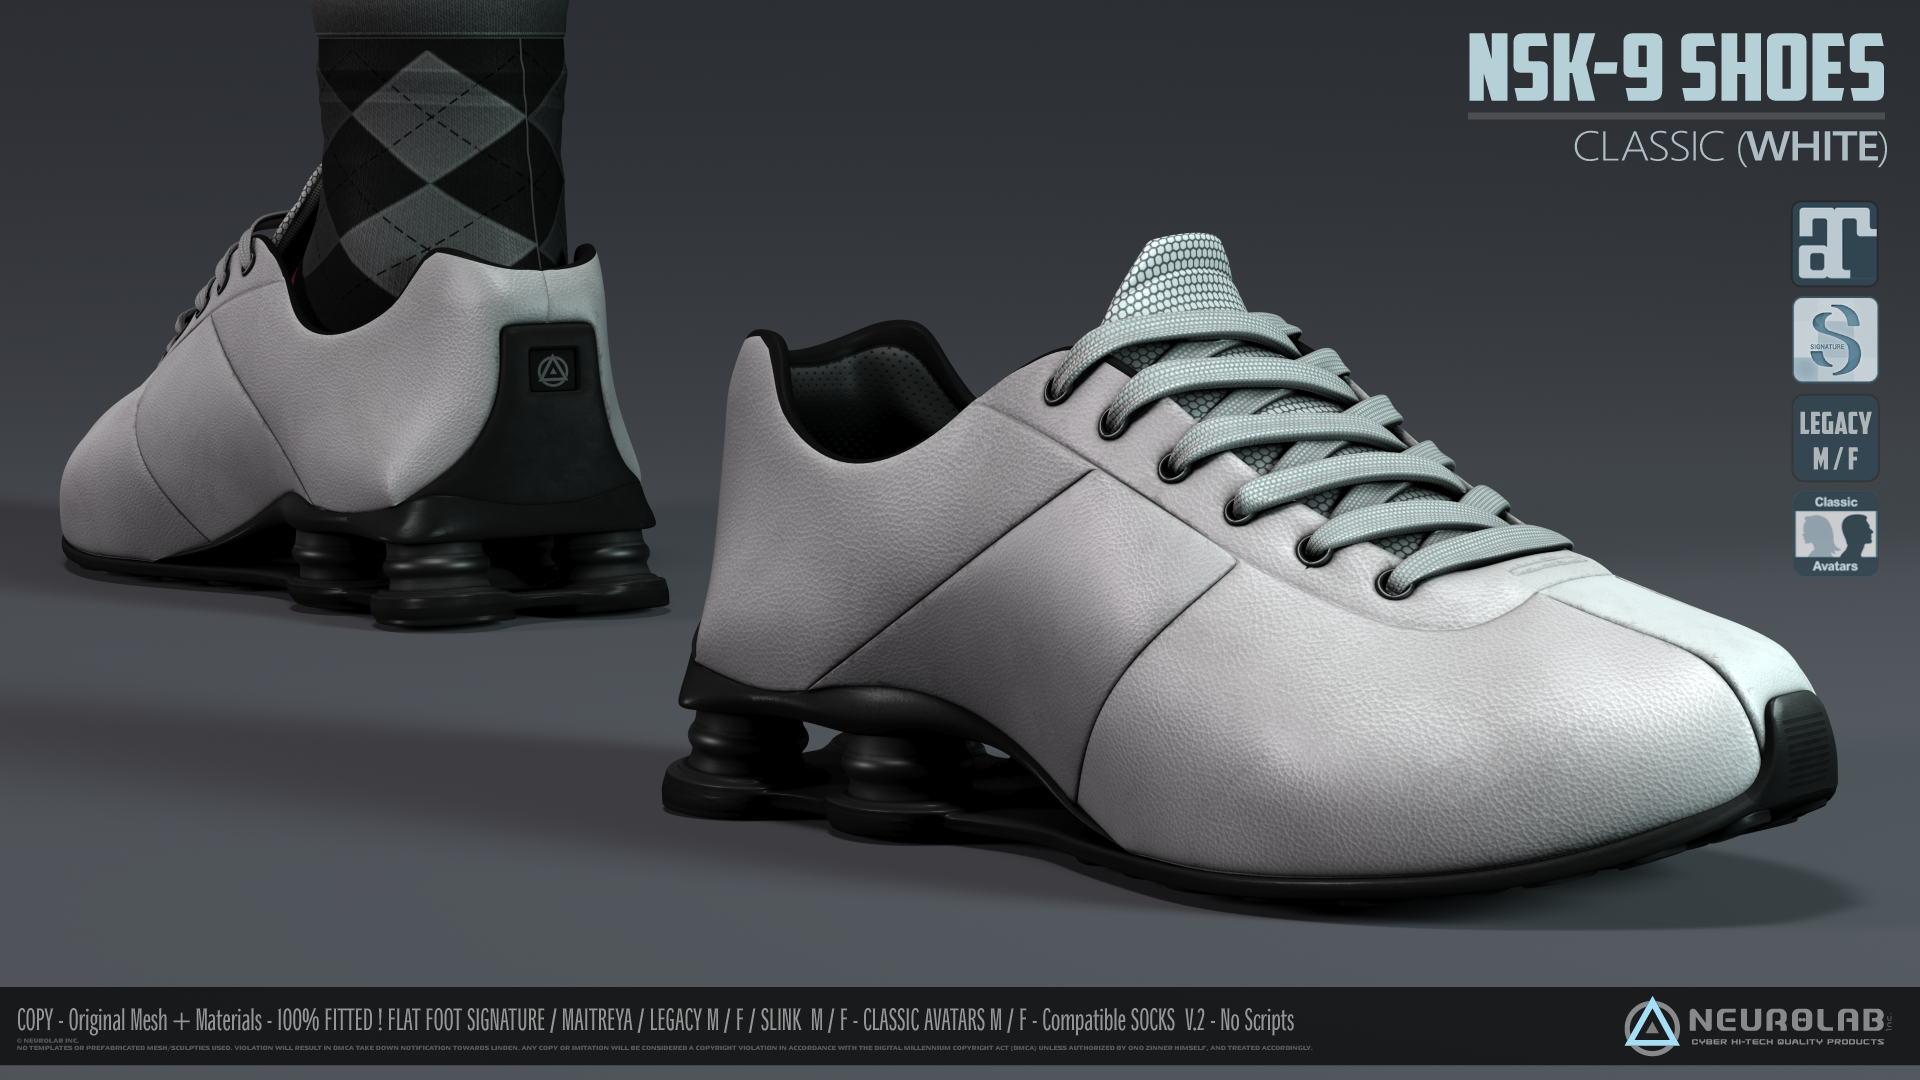 NSK-9 Sneakers (Classic's Edition) [3.0] *Update*